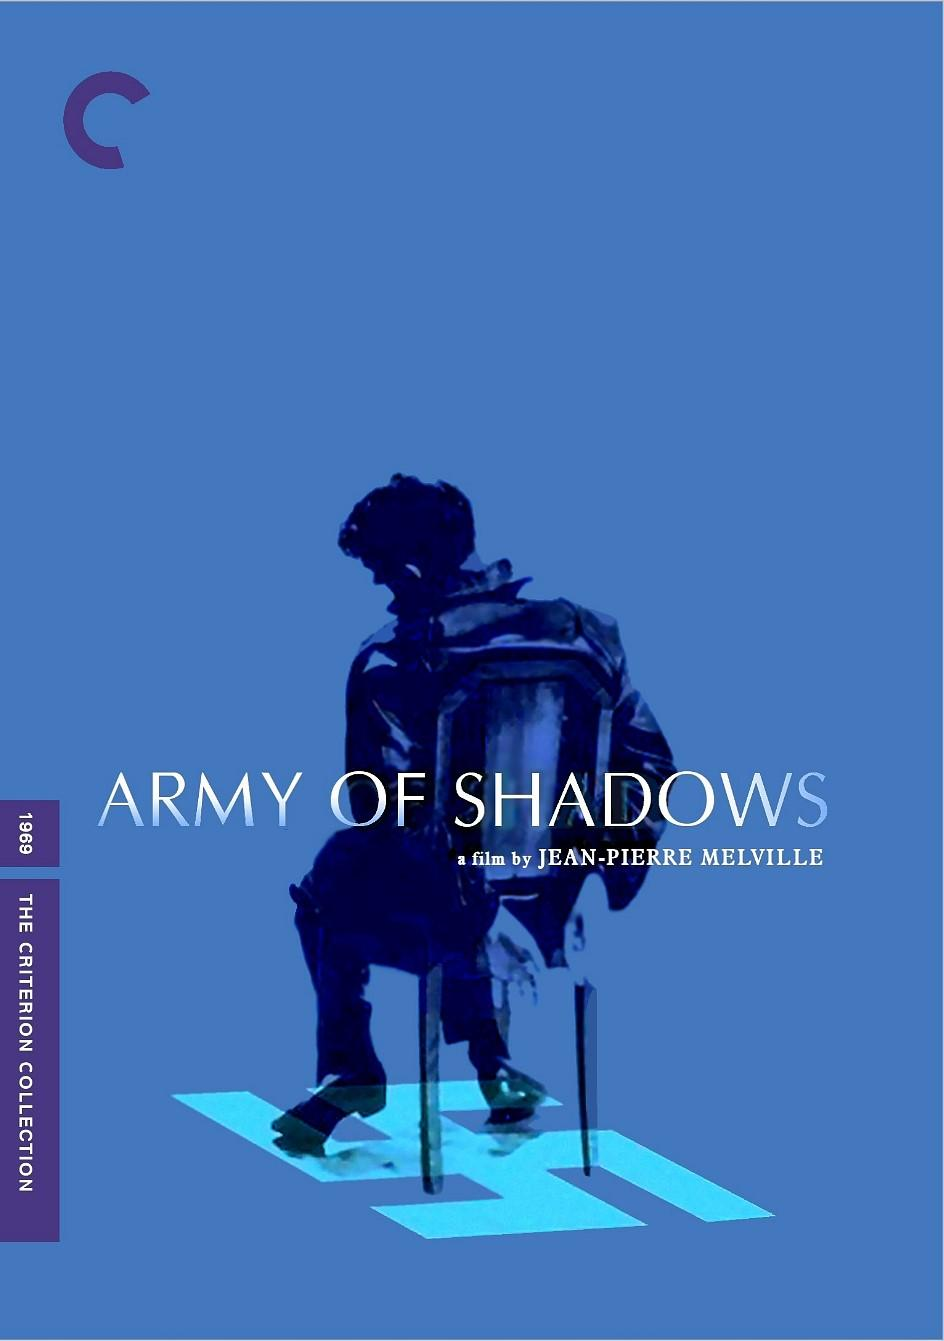 Army_Of_Shadows___Armee_Des_Ombres__L__(1969)